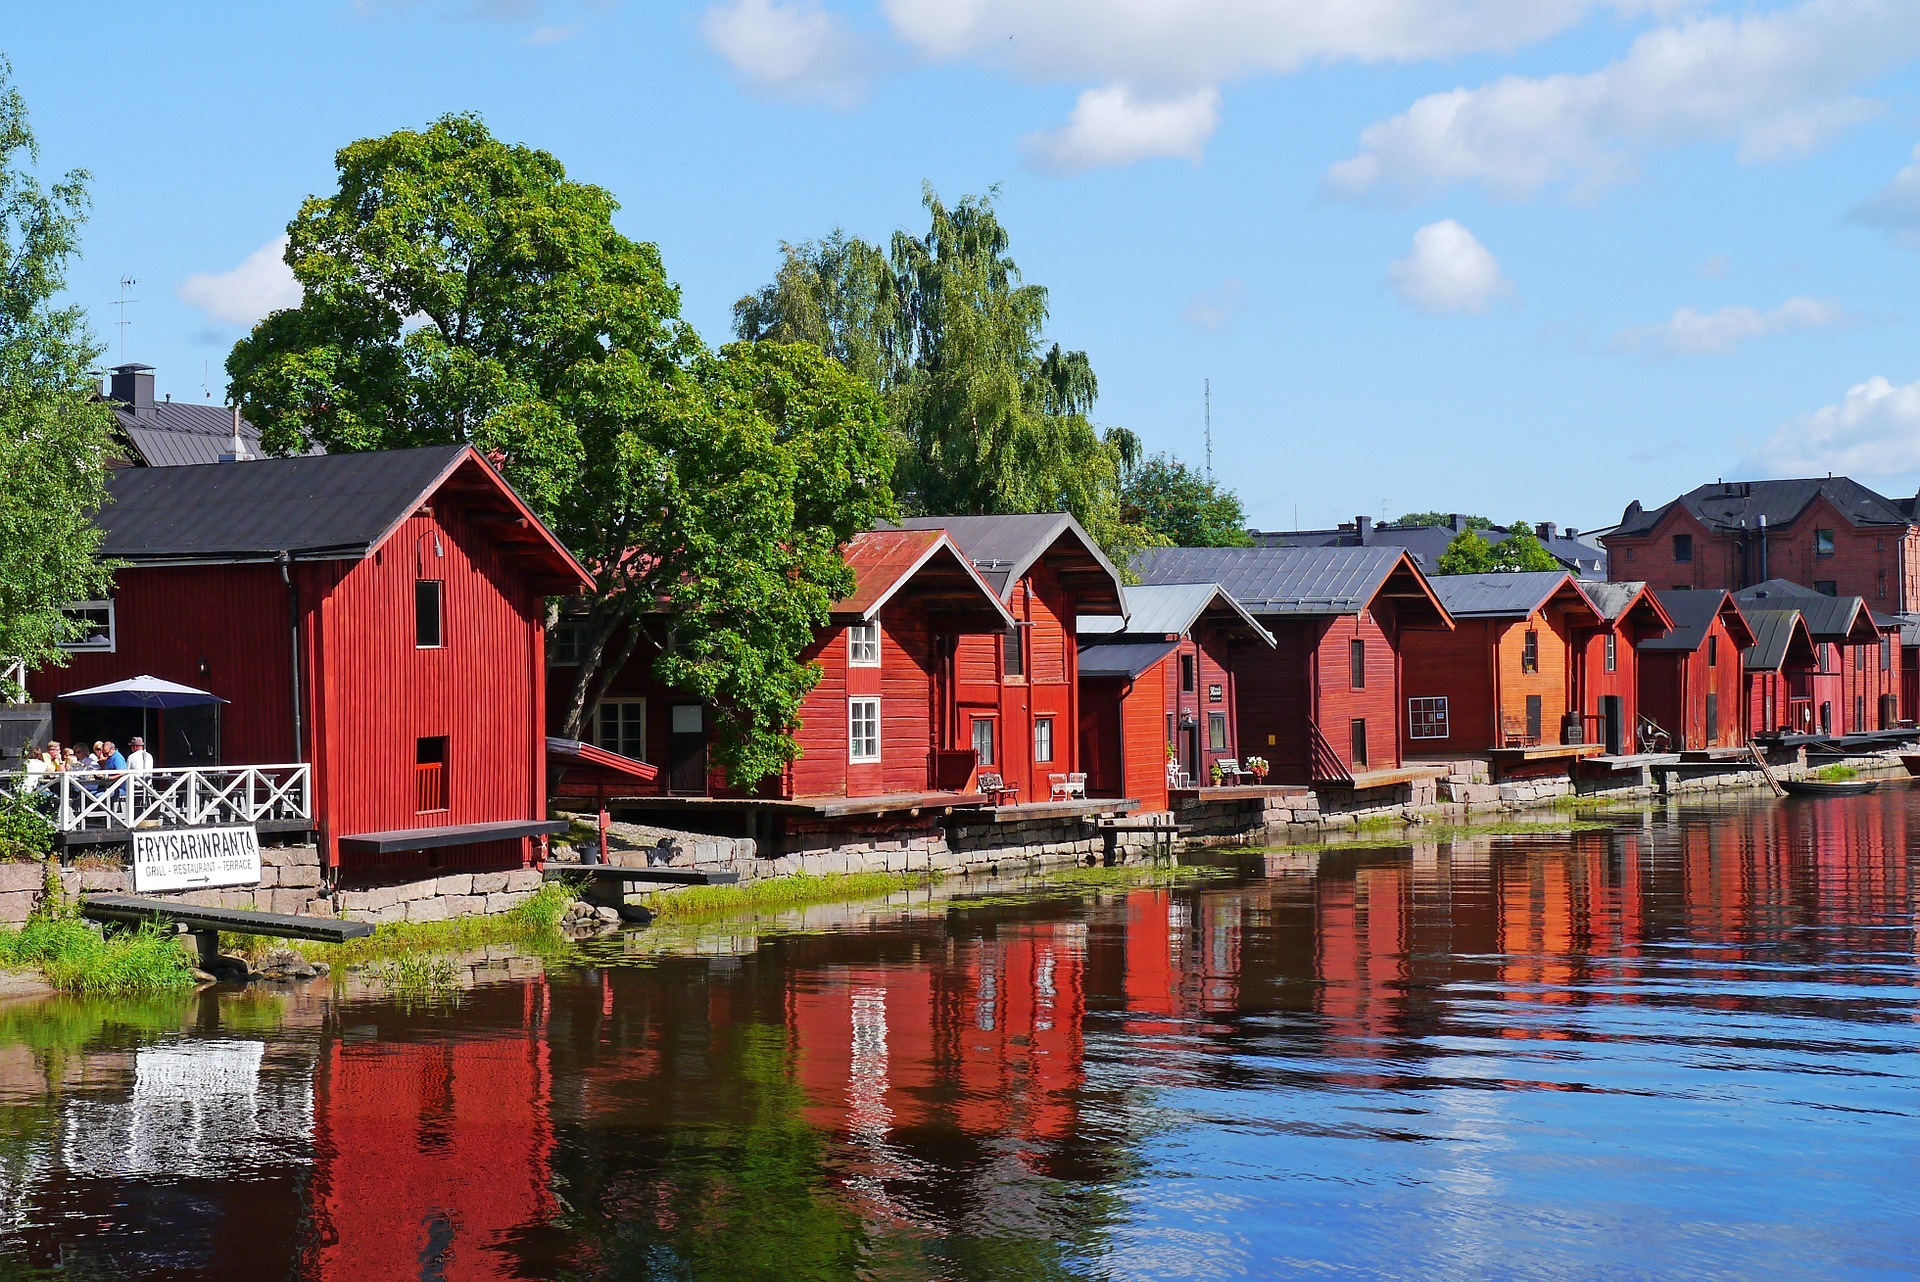 wooden-houses-796386_1920